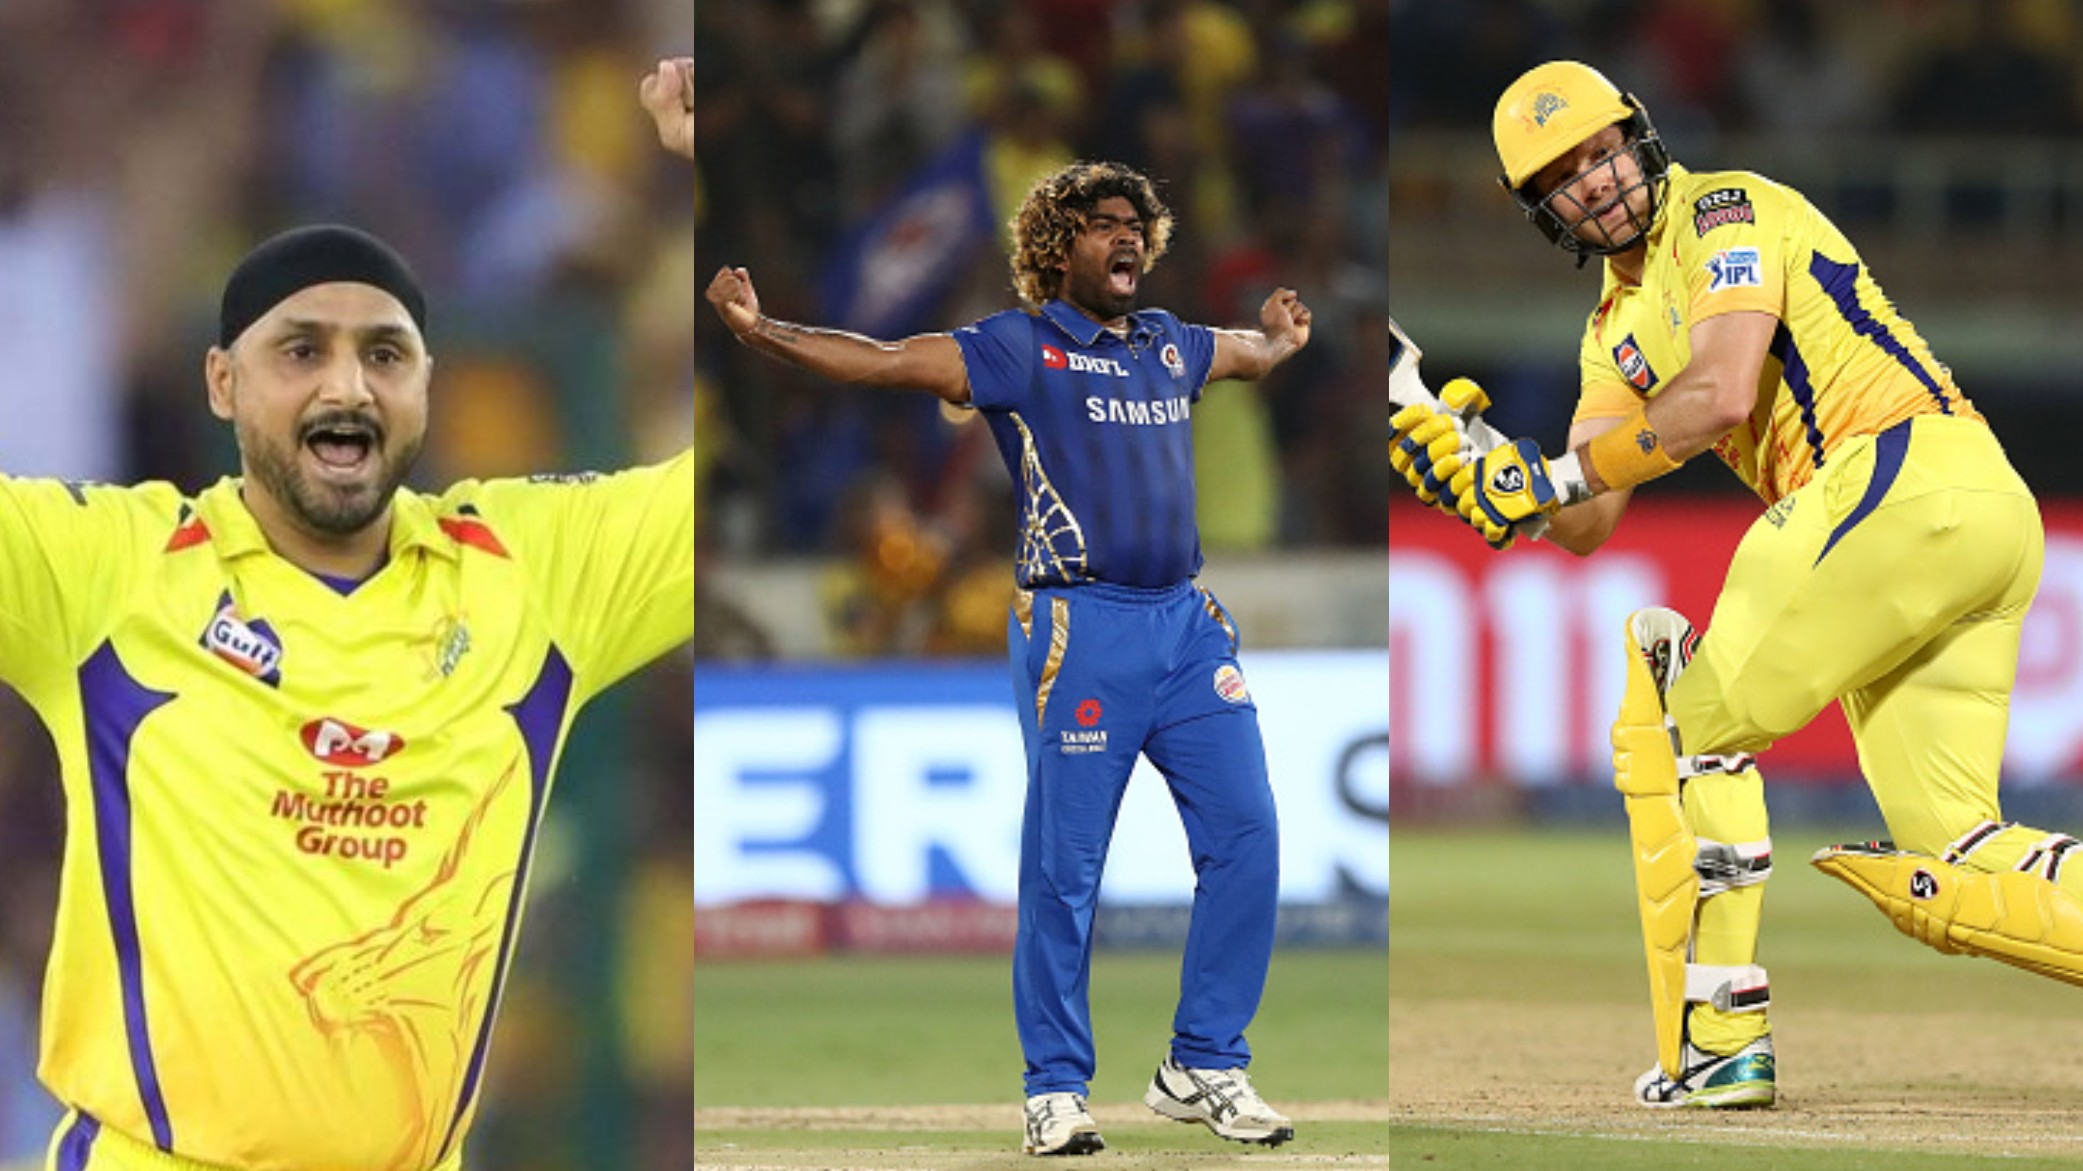 IPL 2020: 5 Players who might be playing their final IPL season in upcoming edition